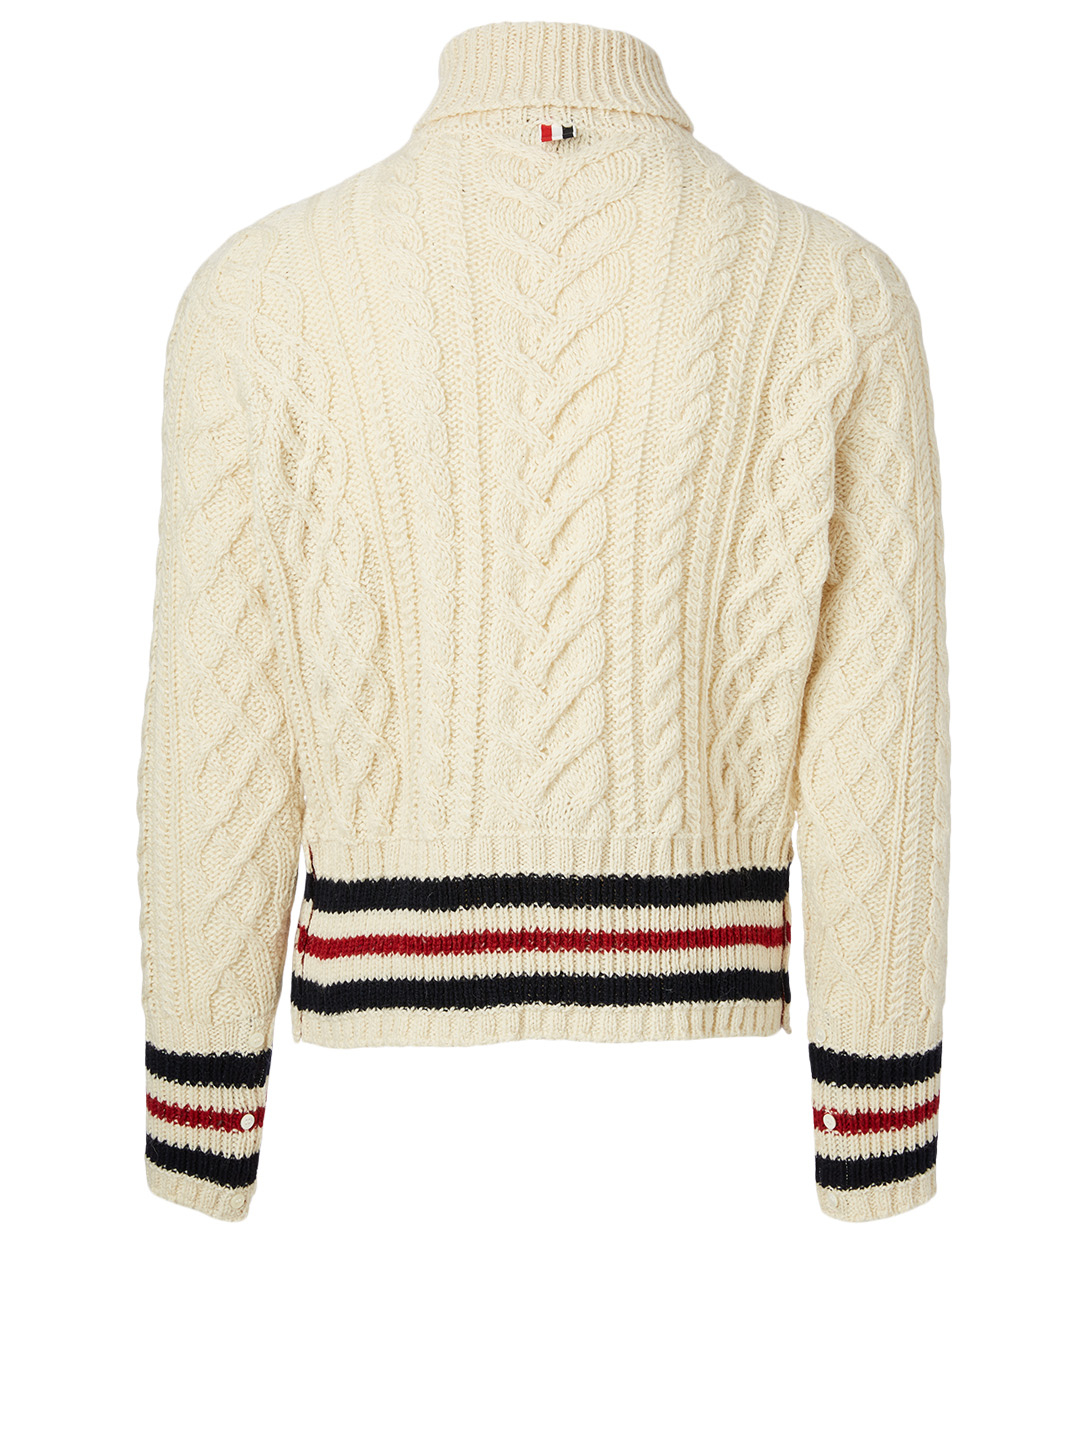 THOM BROWNE Wool And Mohair Turtleneck Aran Cable Sweater Men's White